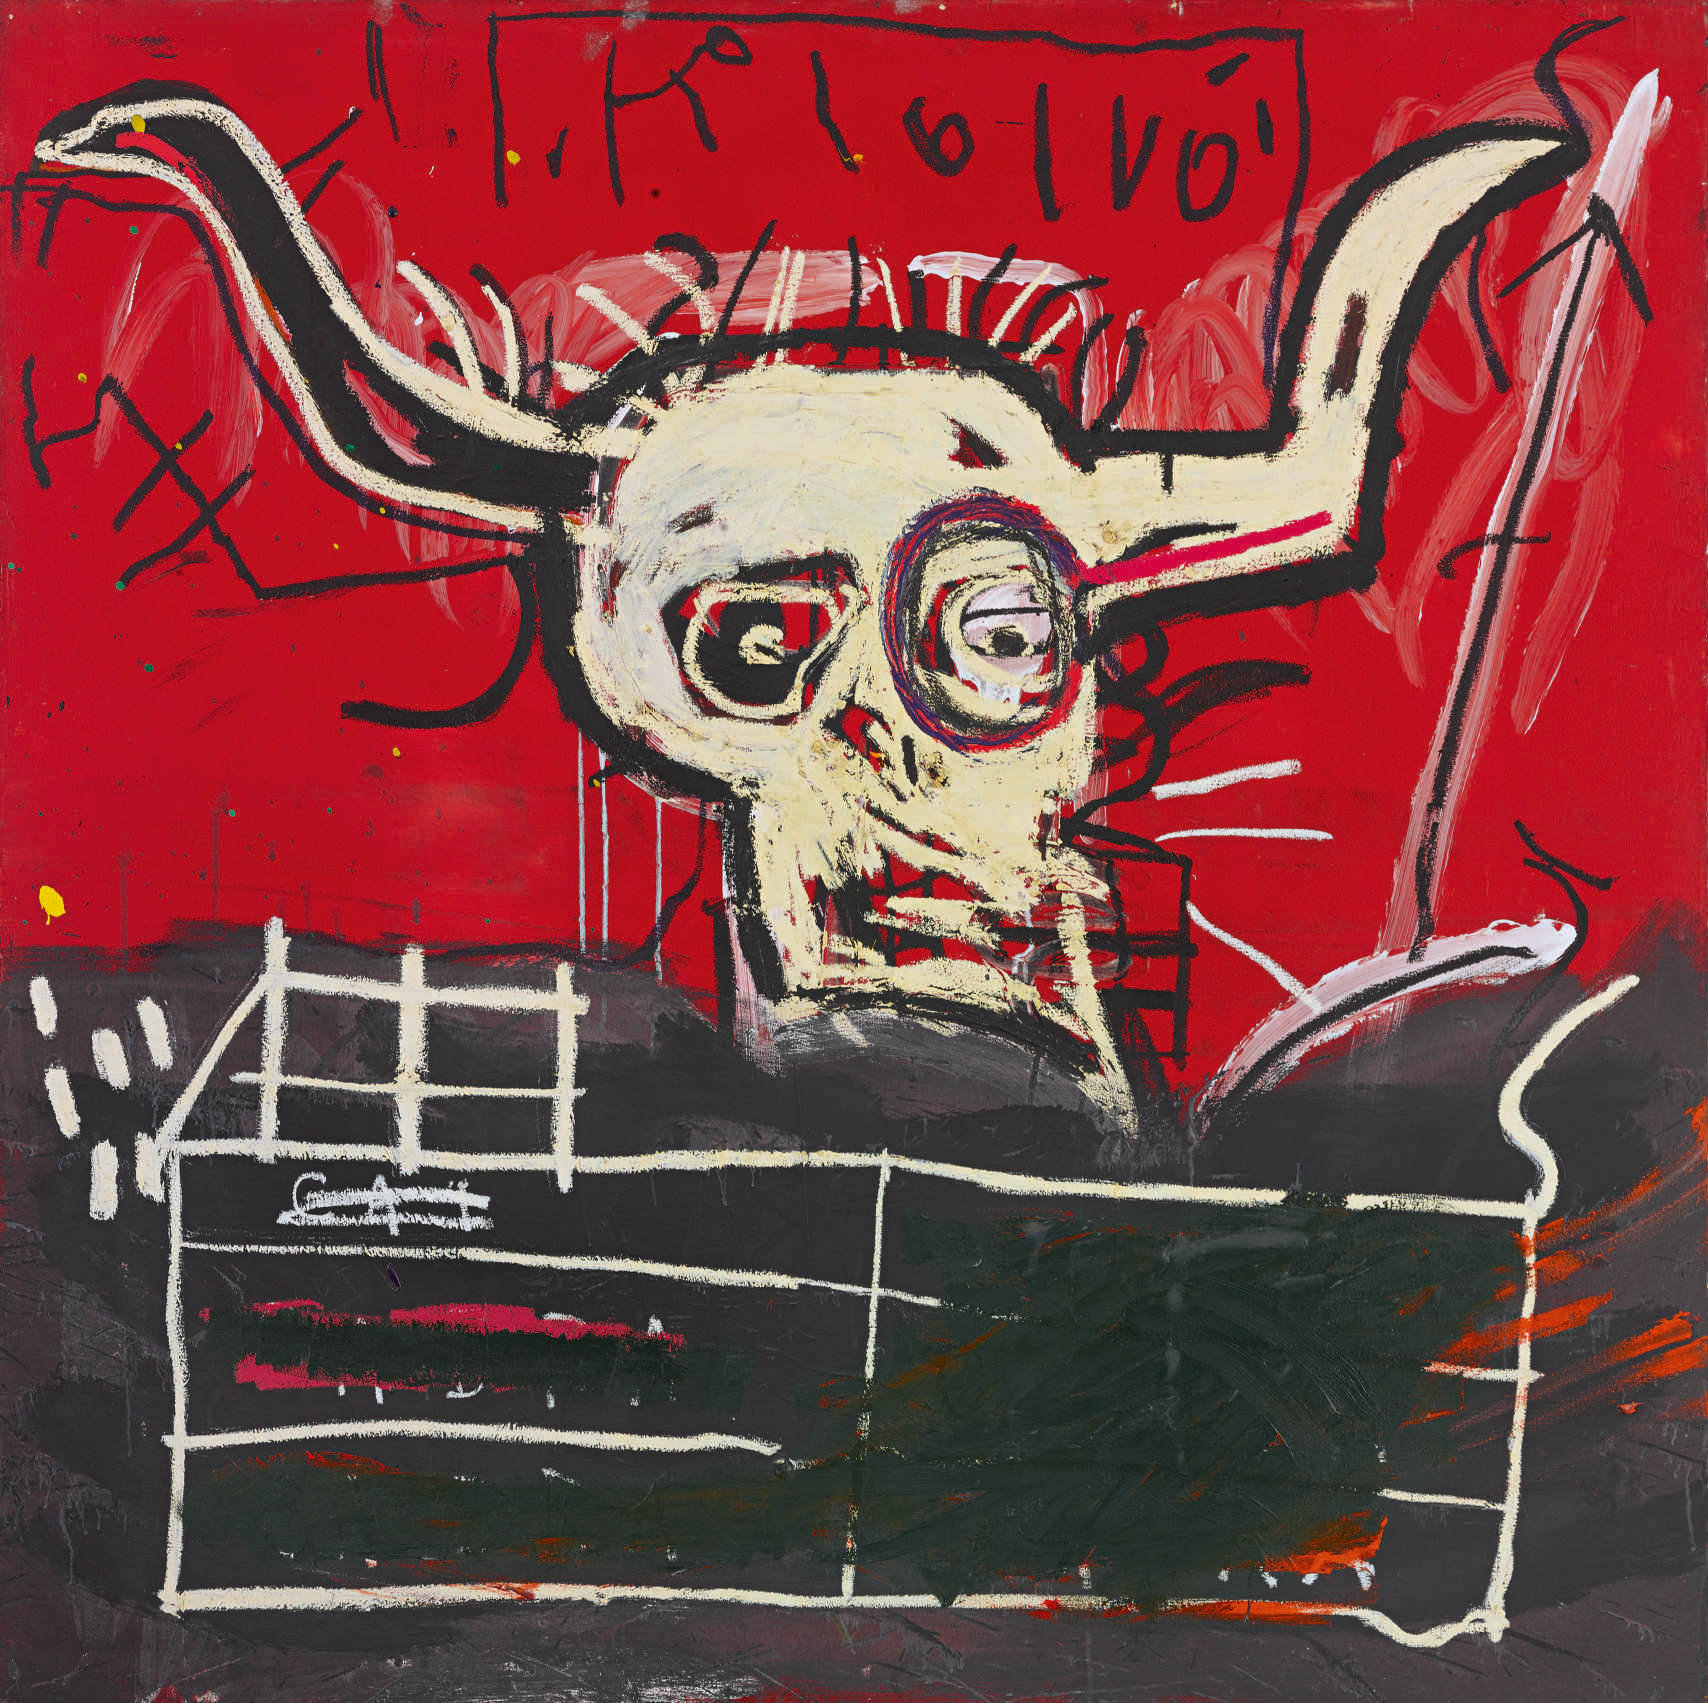 Jean-Michel Basquiat, Cabra, Collection de Yoko Ono Estimation: 9 - 12 millions de dollars